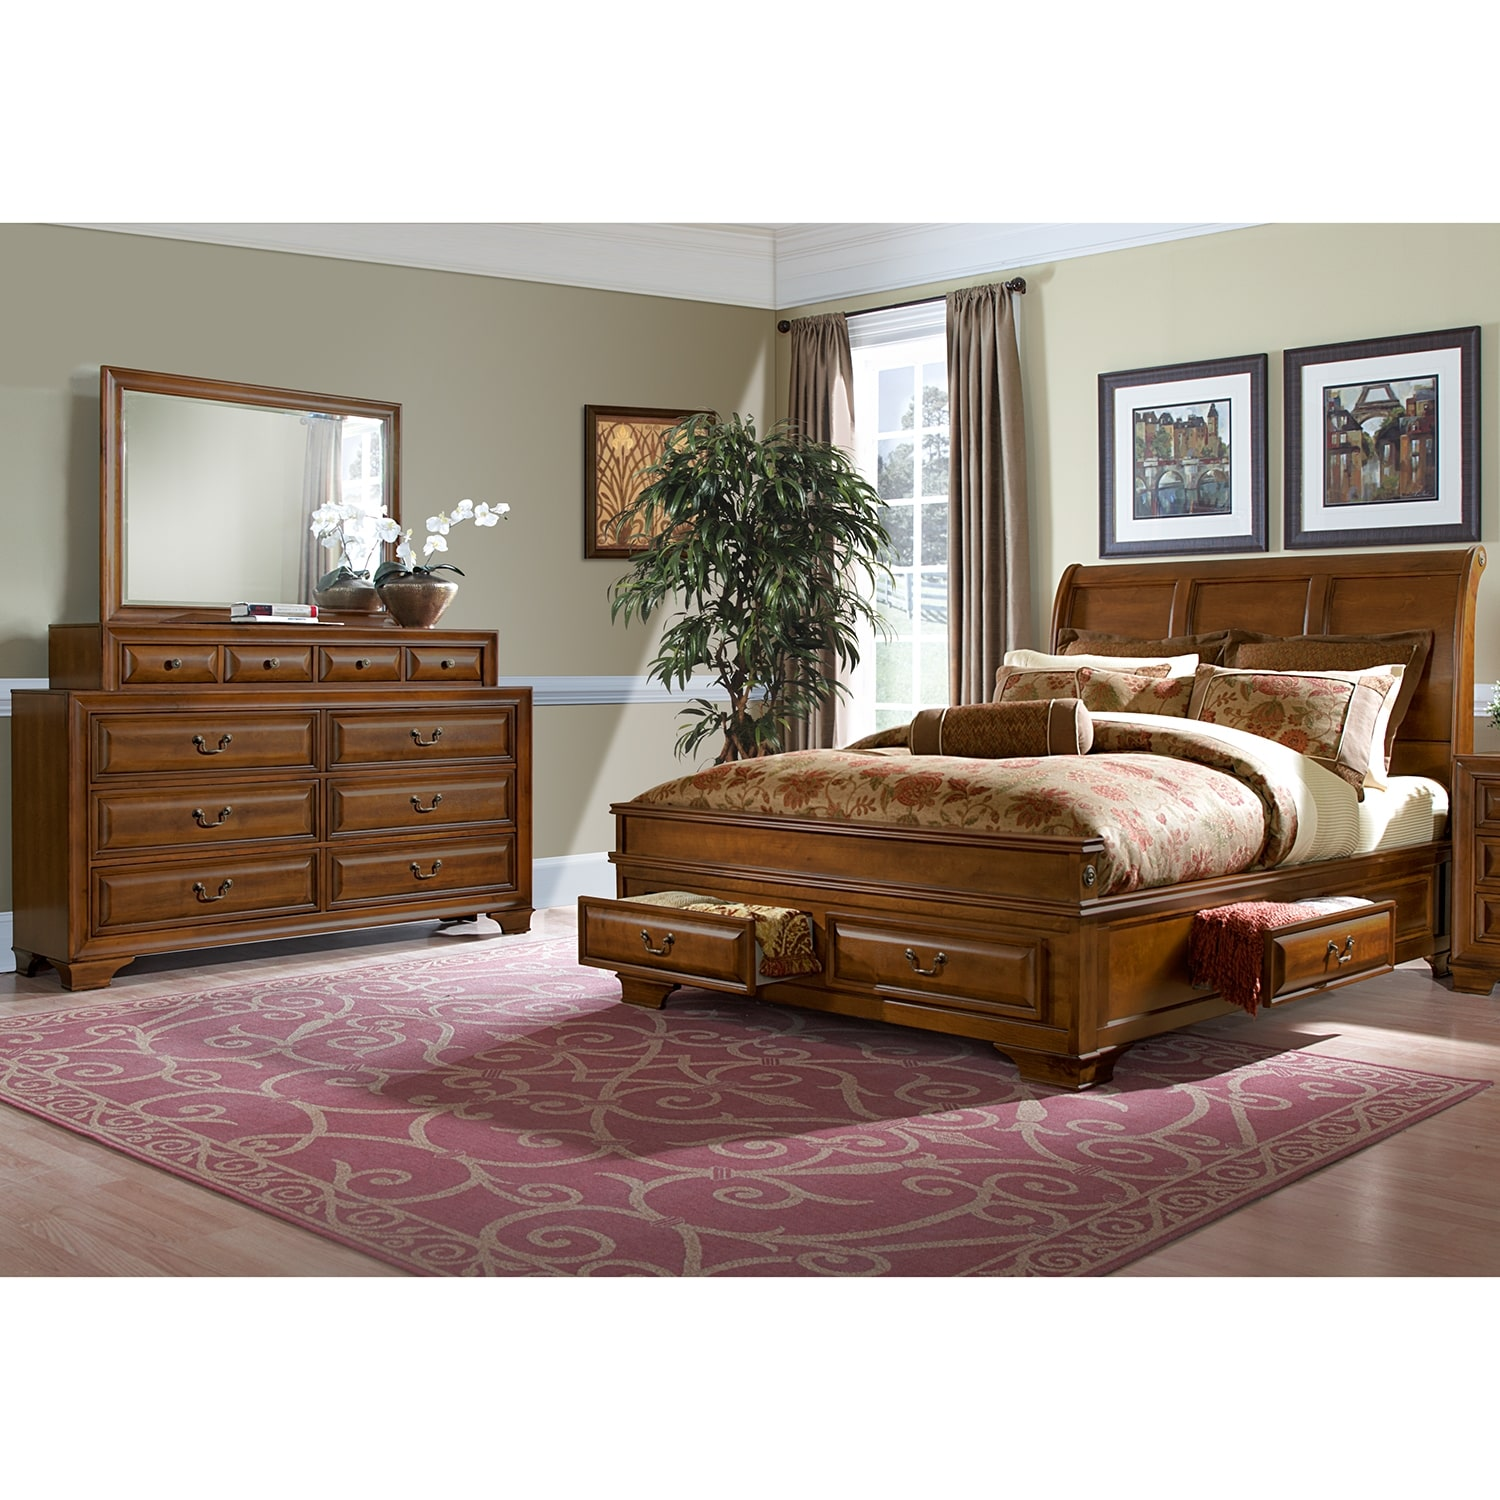 Sanibelle 5 Pc. King Storage Bedroom